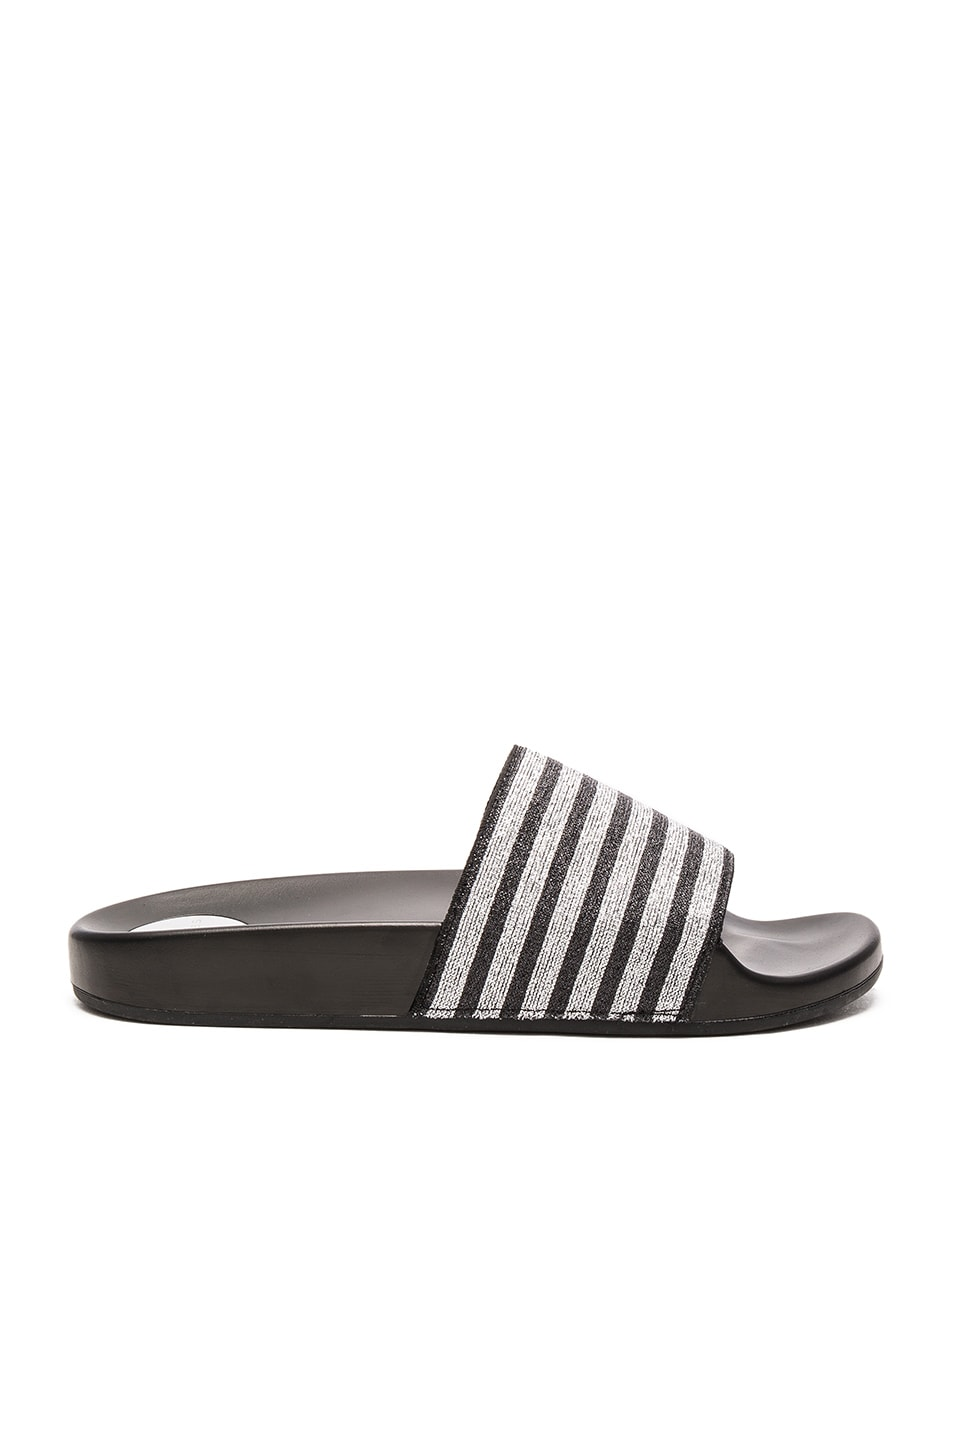 Marc Jacobs Tech Cooper Sport Slide in Black & Silver